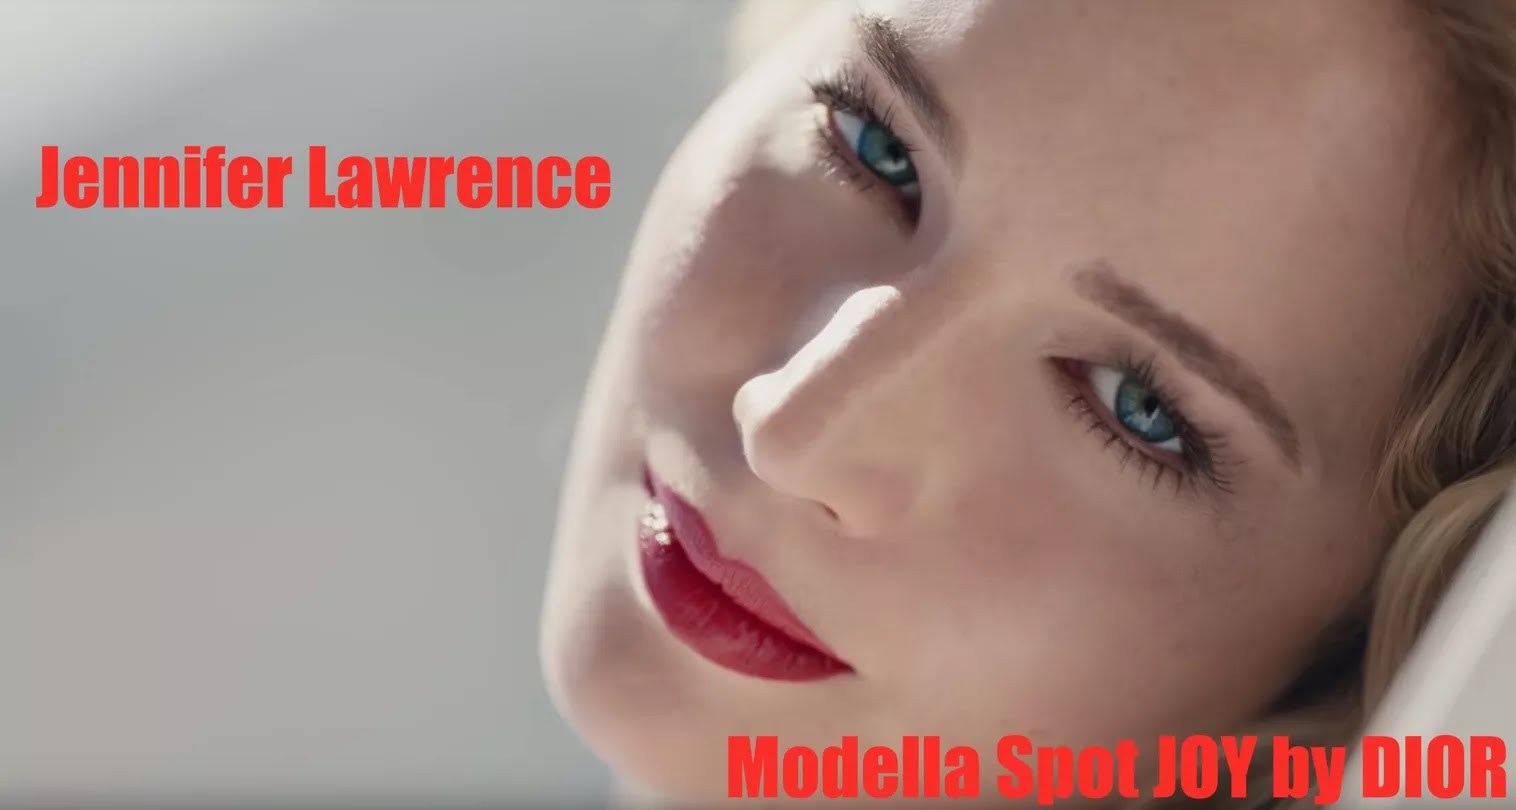 jennifer lawrence, modella spot dior joy 2018